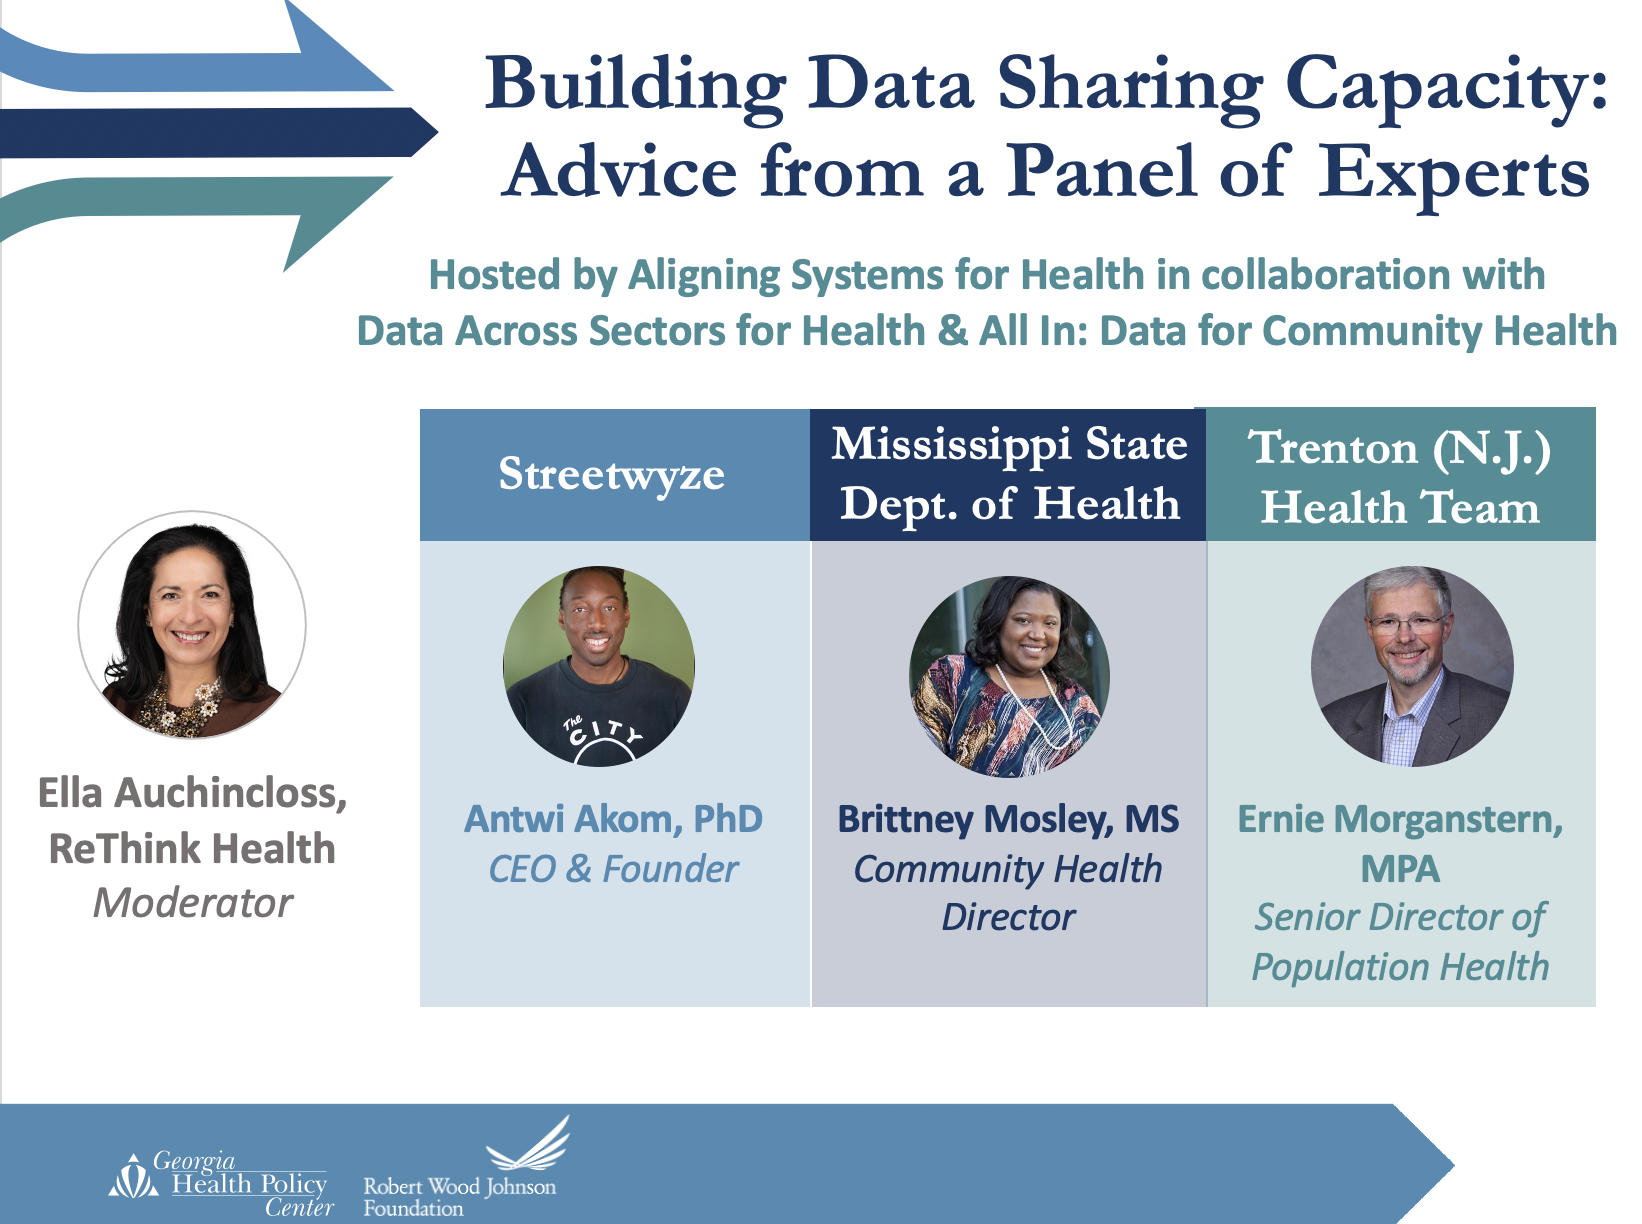 Building Data Sharing Capacity: Advice from a Panel of Experts